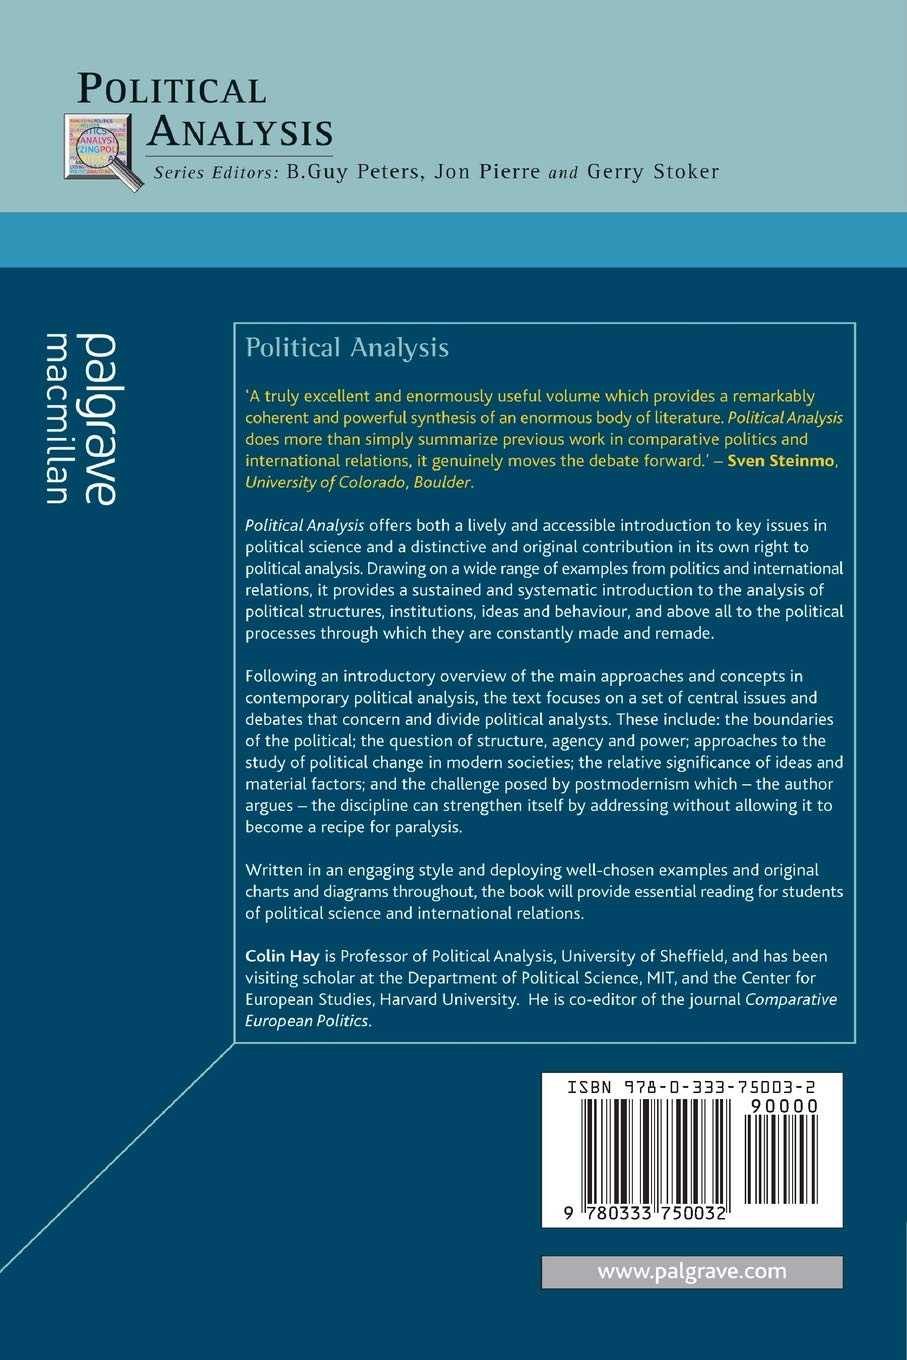 Buy Political Analysis: A Critical Introduction Book Online at Low ...